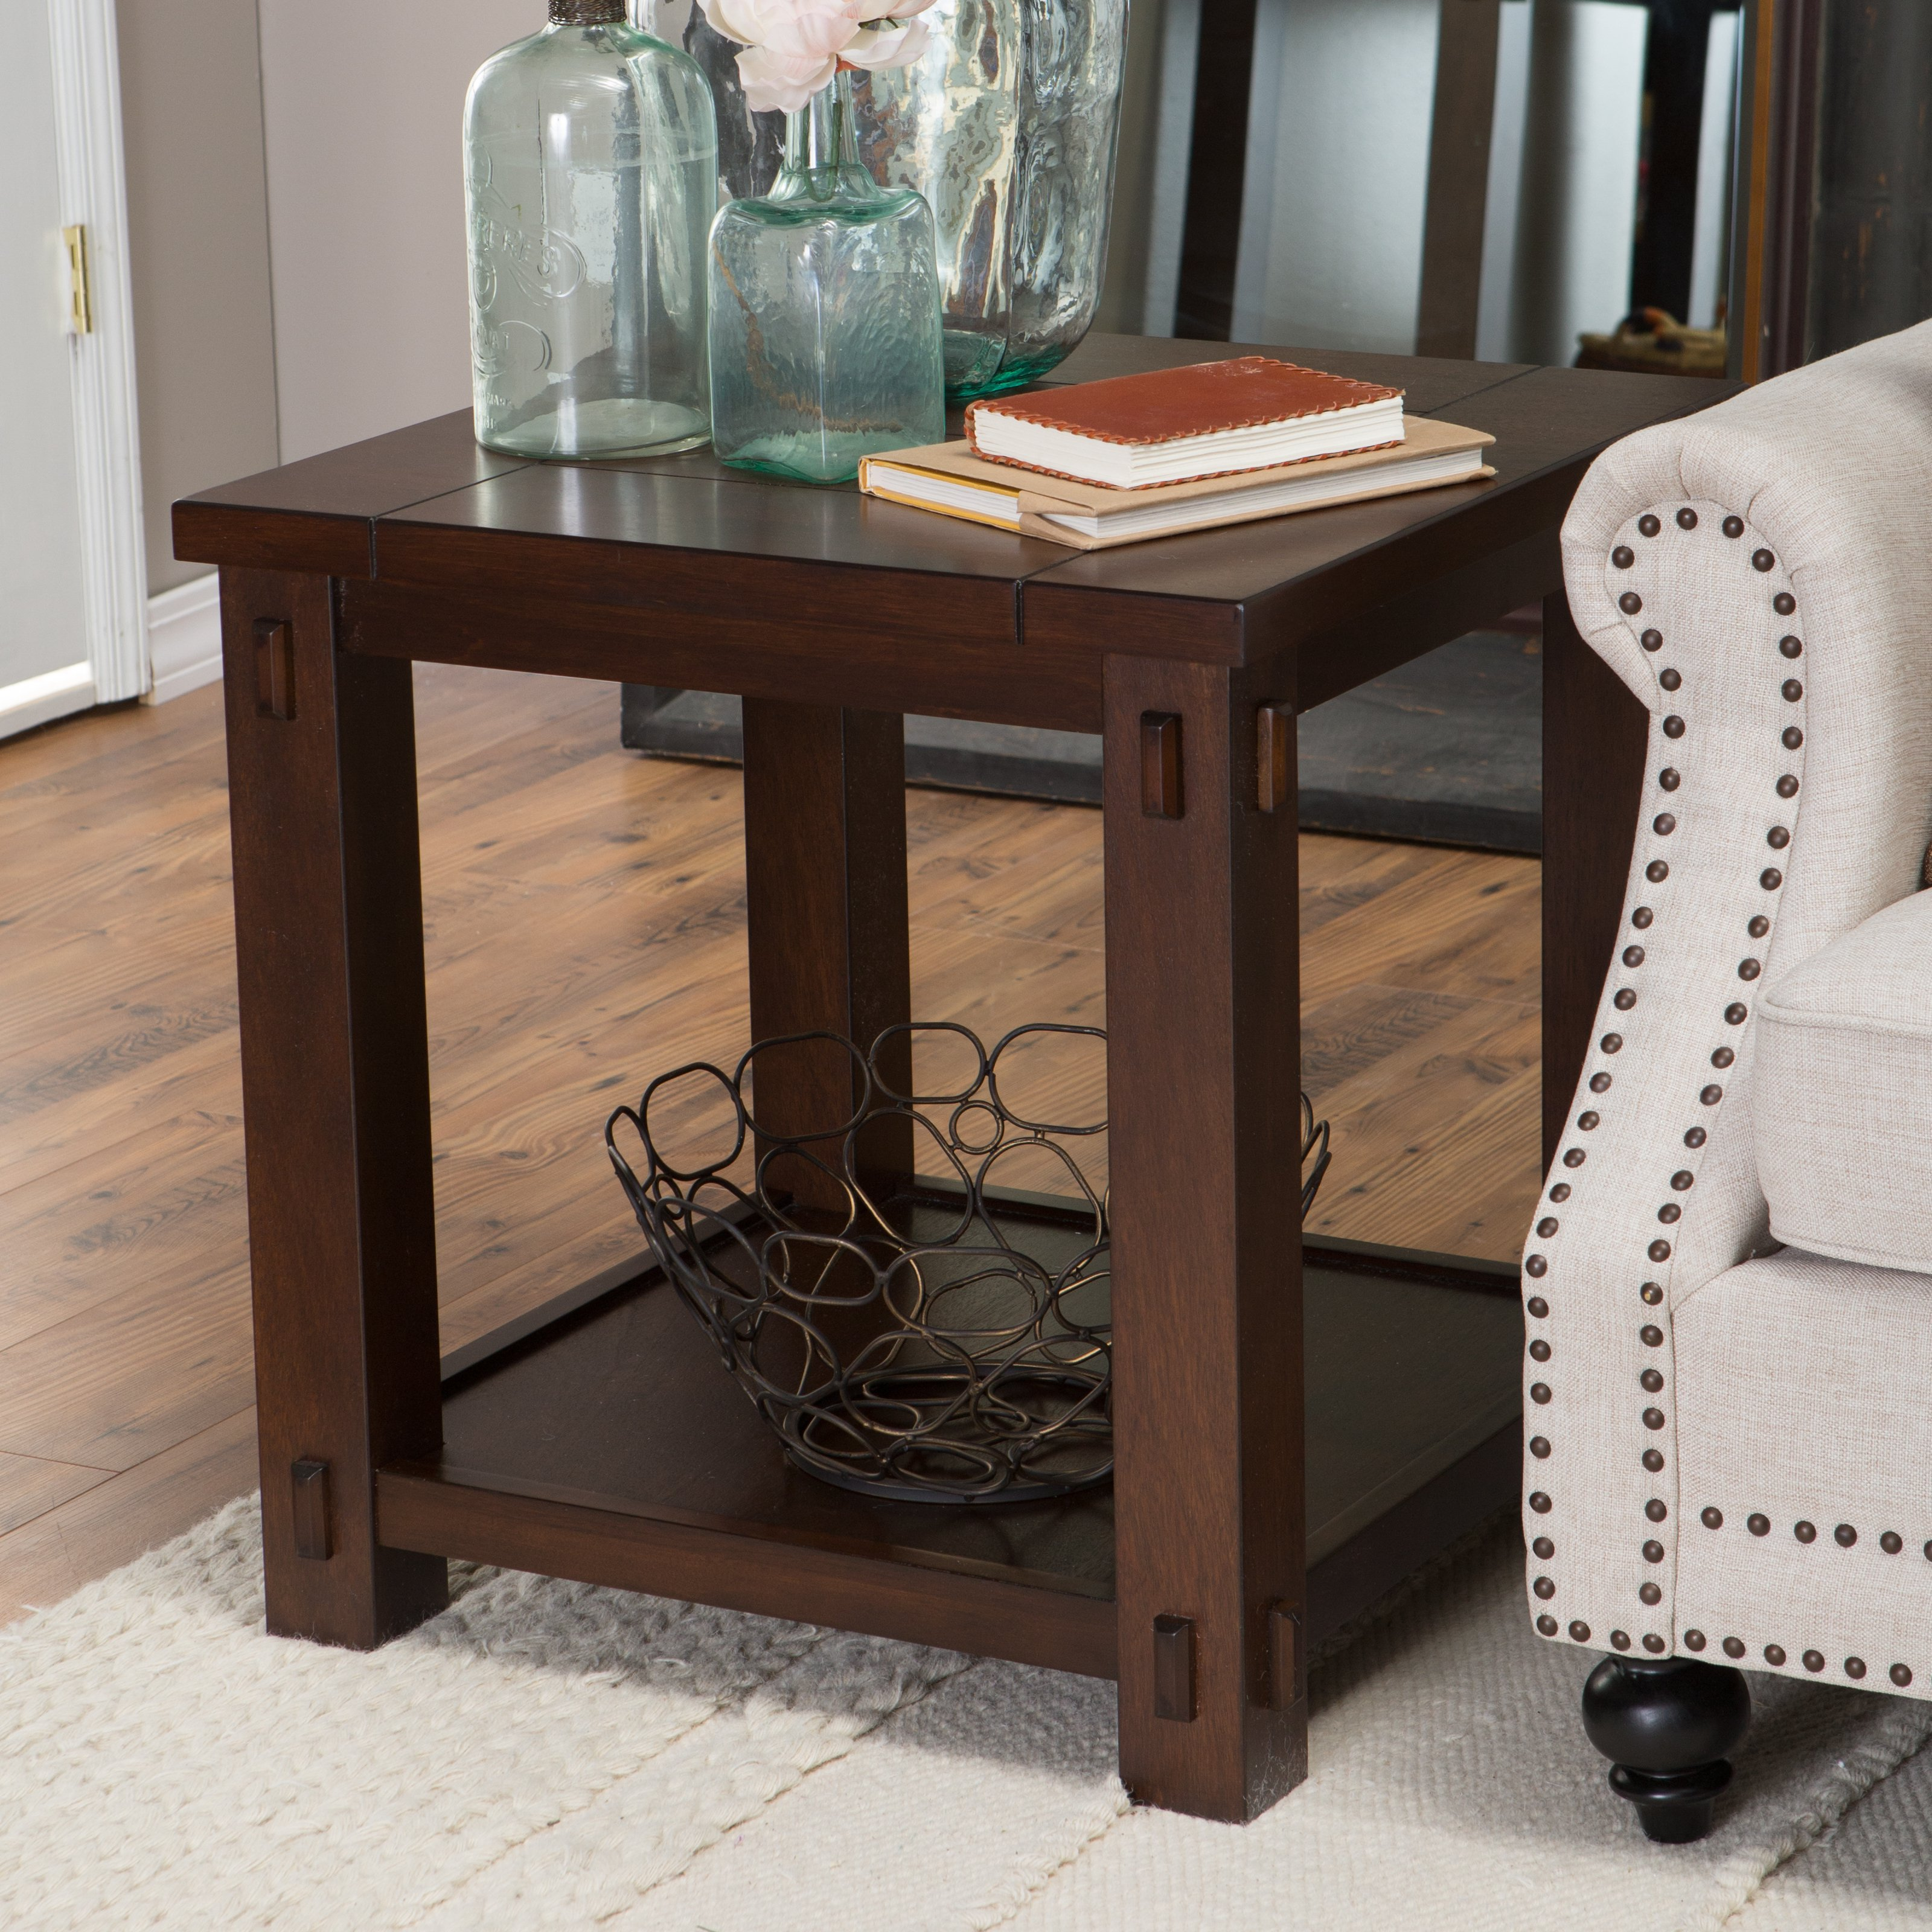 tall narrow end tables the new way home decor save more space table espresso homesense wallpaper modern night lamps honey oak side coffee and two acrylic nightstand ashley